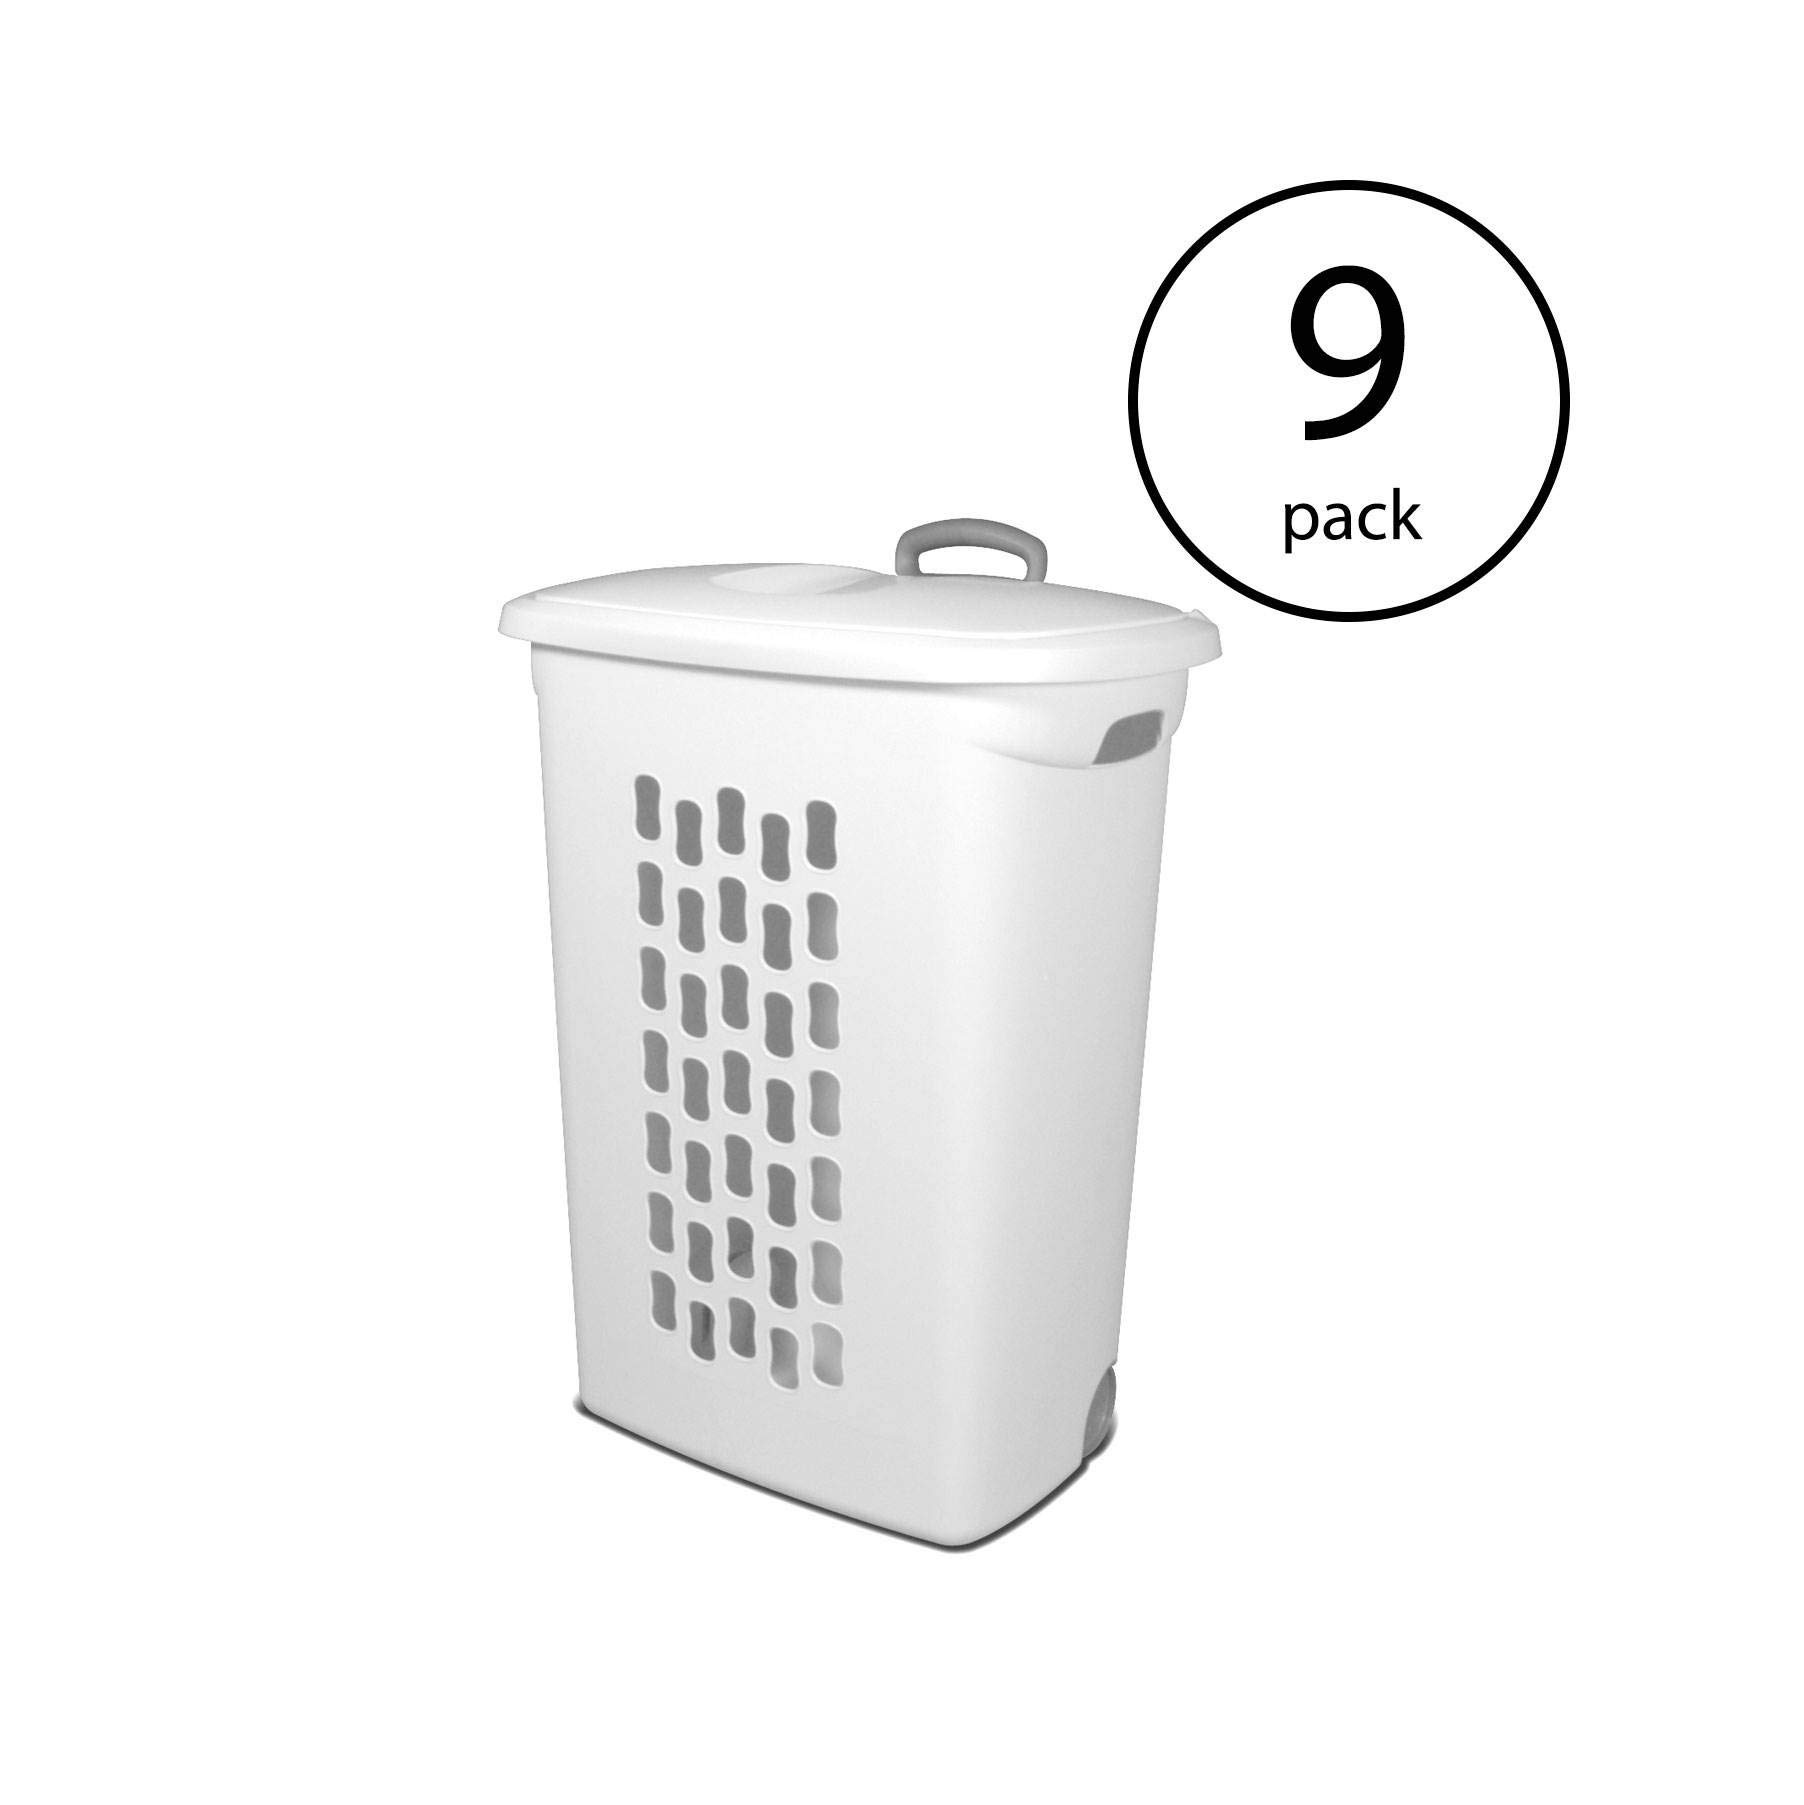 STERILITE White Laundry Hamper with Lift-Top, Wheels, and Pull Handle | 12228003 (9 Pack) by STERILITE